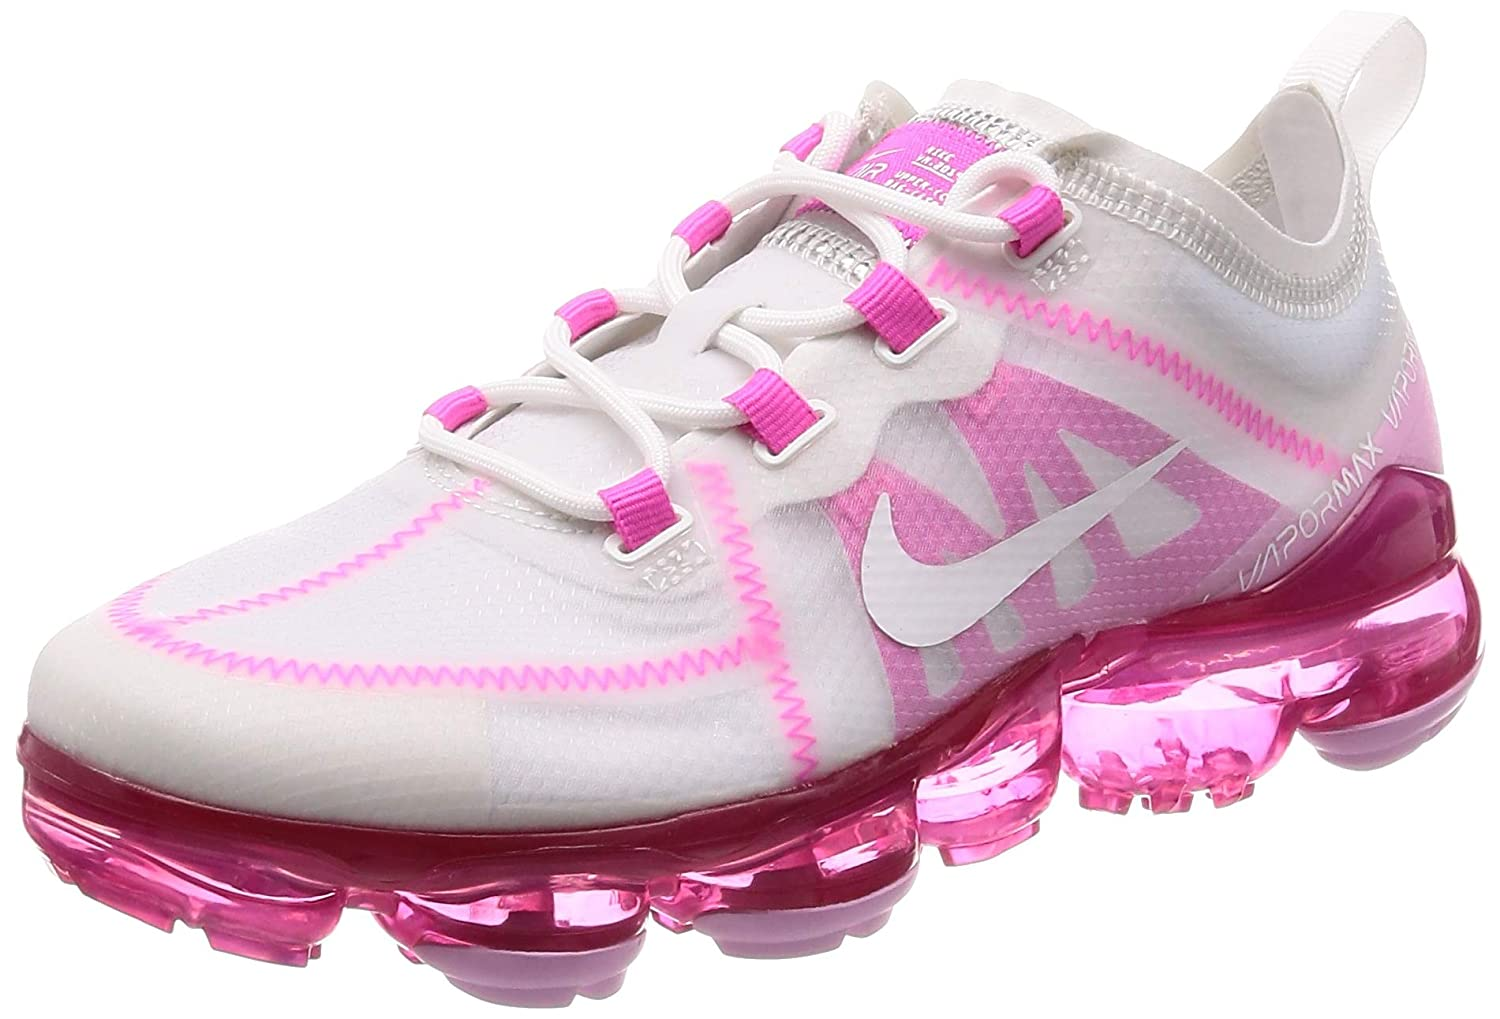 Nike Women s Air Vapormax 2019 Nylon Casual Shoes